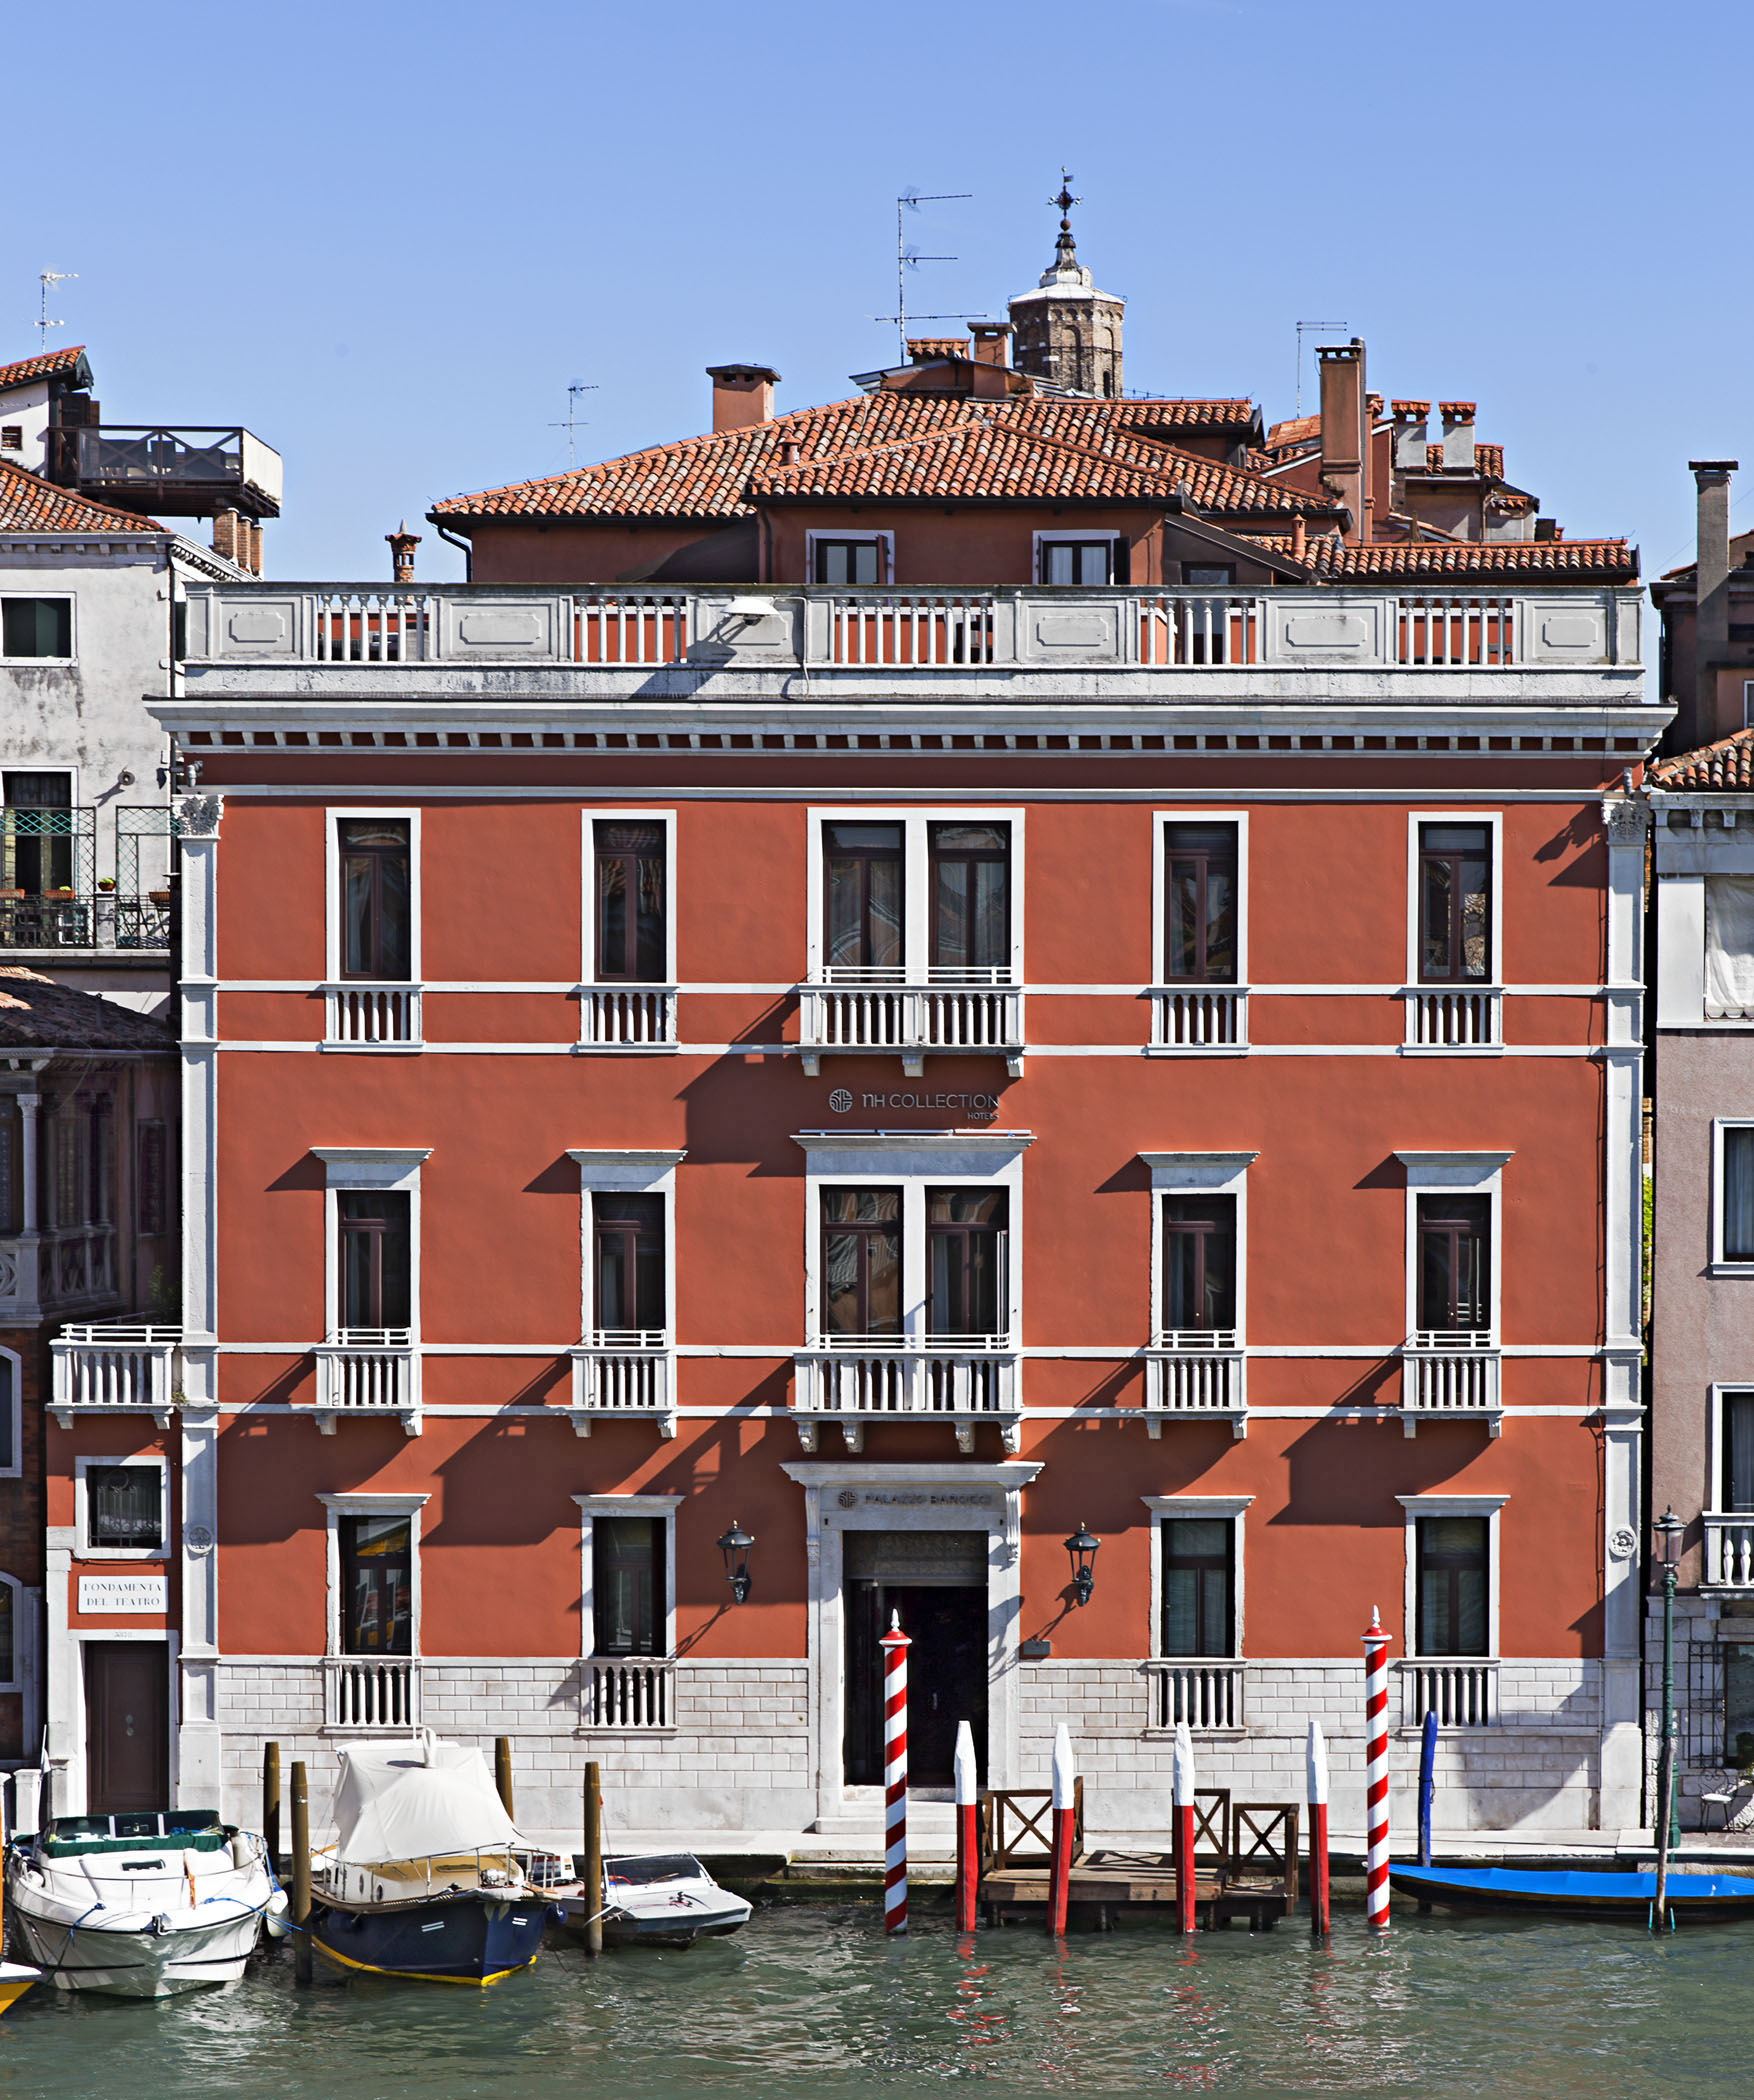 205460 nh%20collection%20palazzo%20barocci%20 %20facade d178a1 original 1461332993